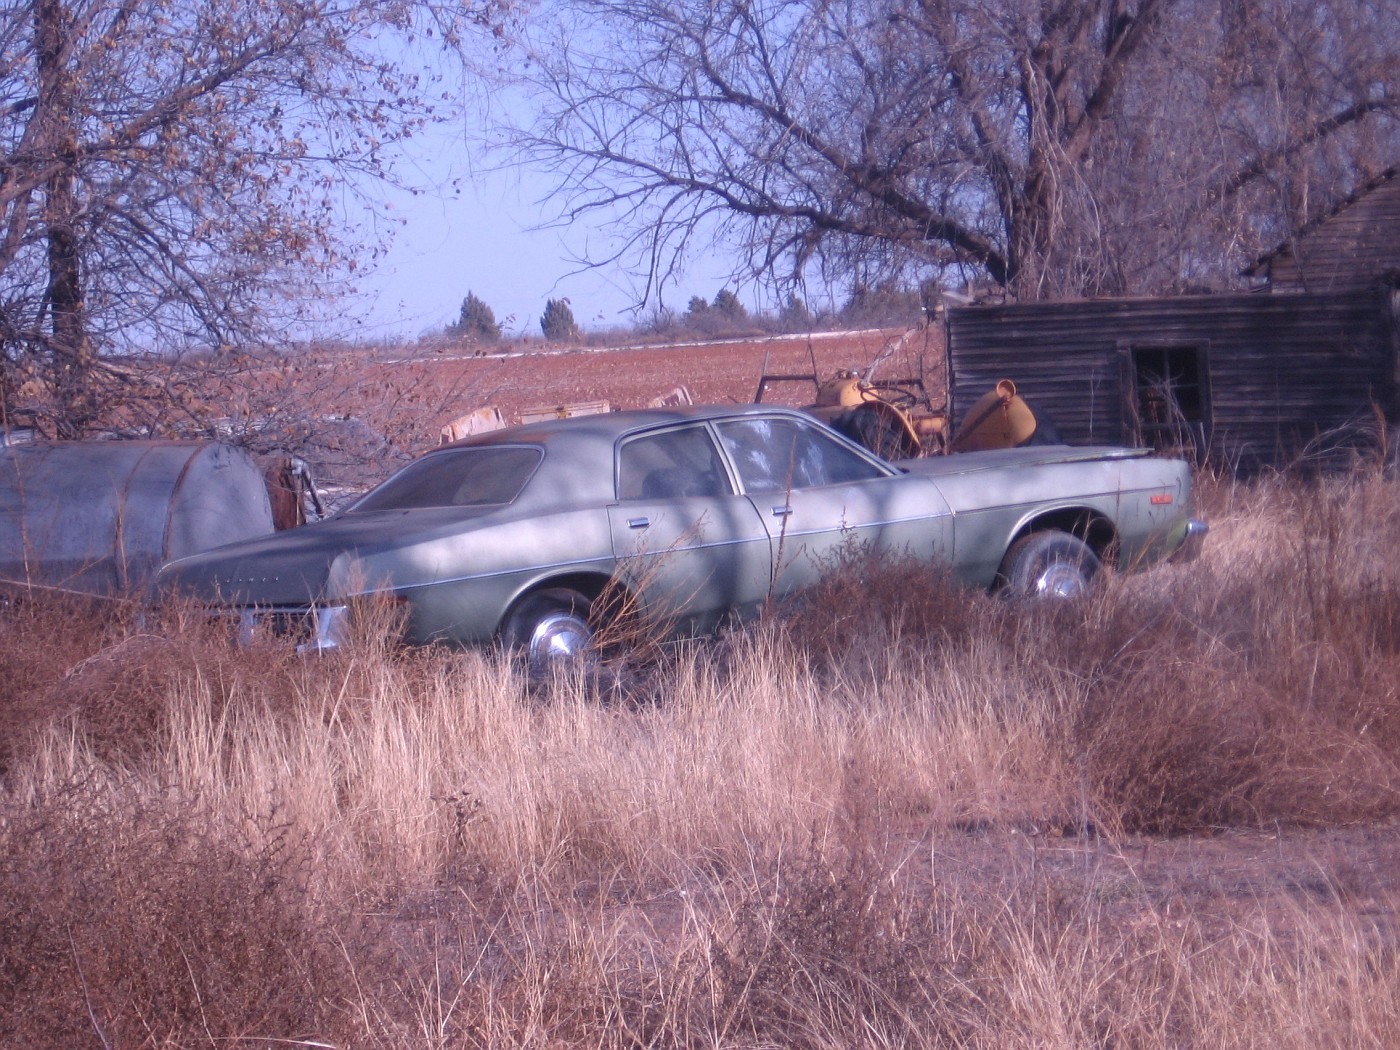 TX - Unknown, possible NM car